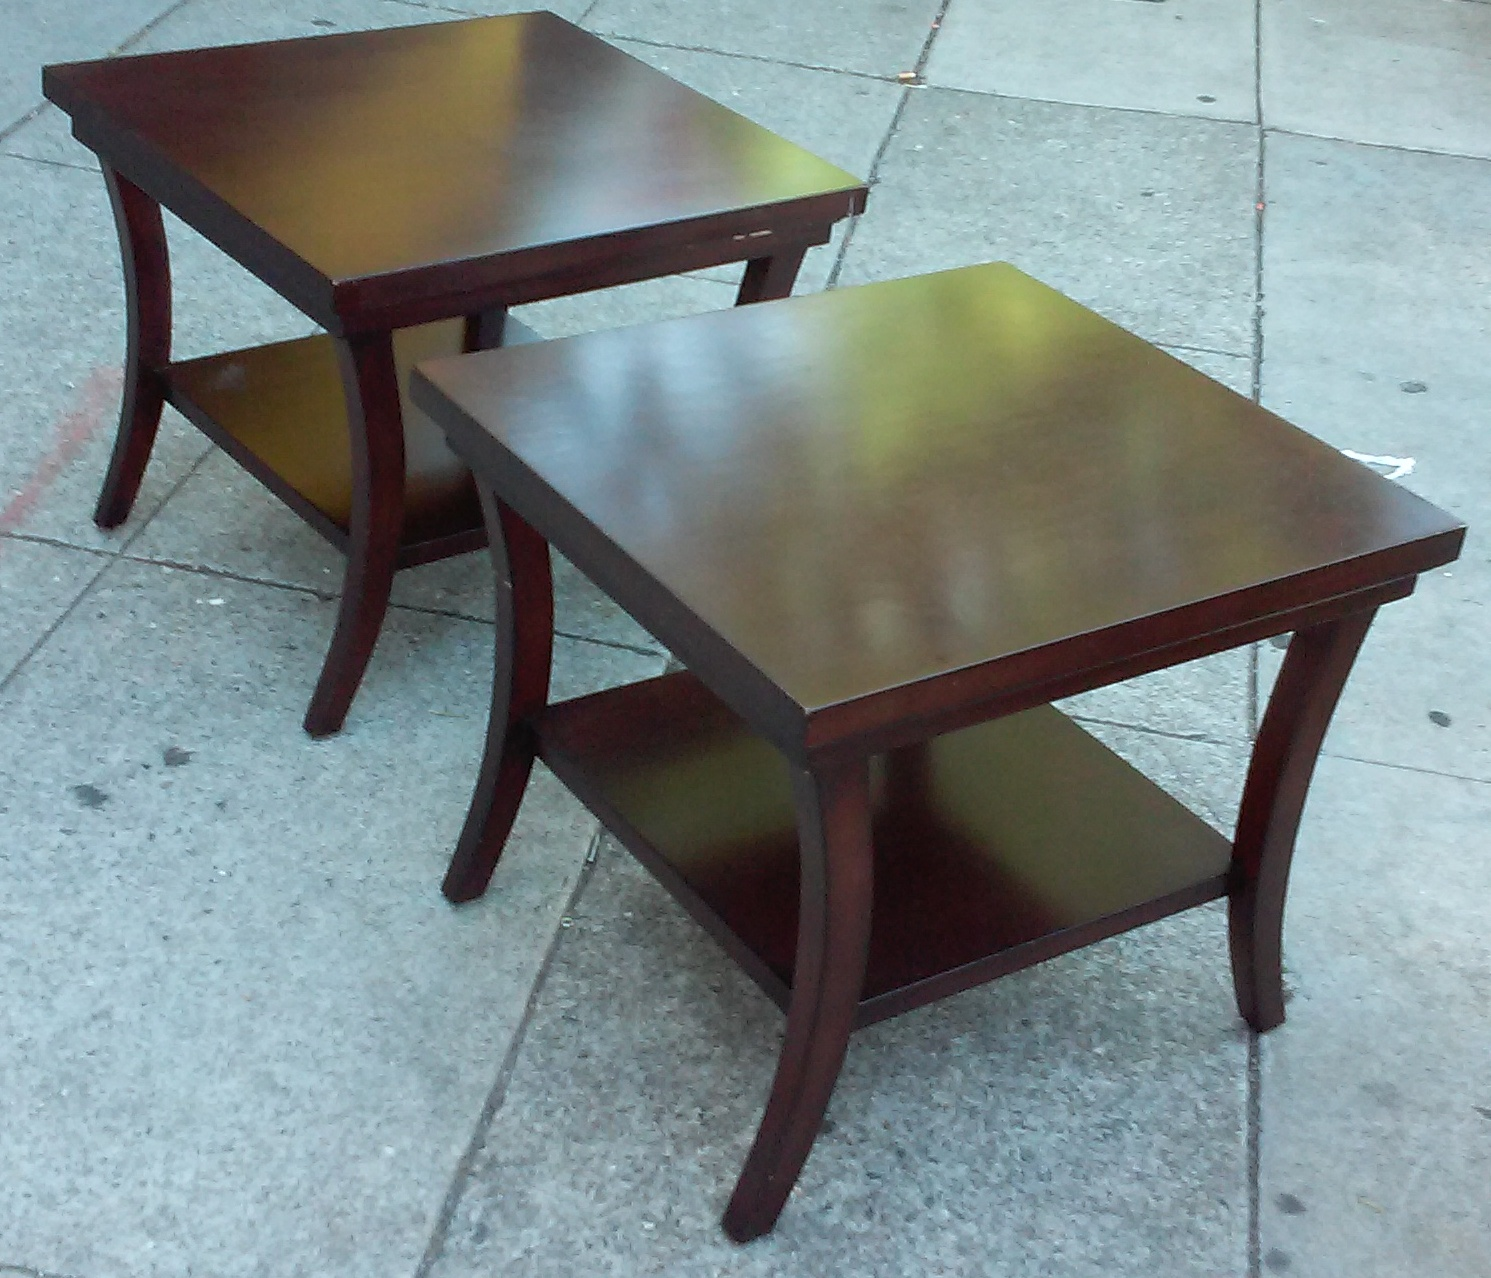 Uhuru furniture collectibles sold bargain buy 2239 for 10 wide end table